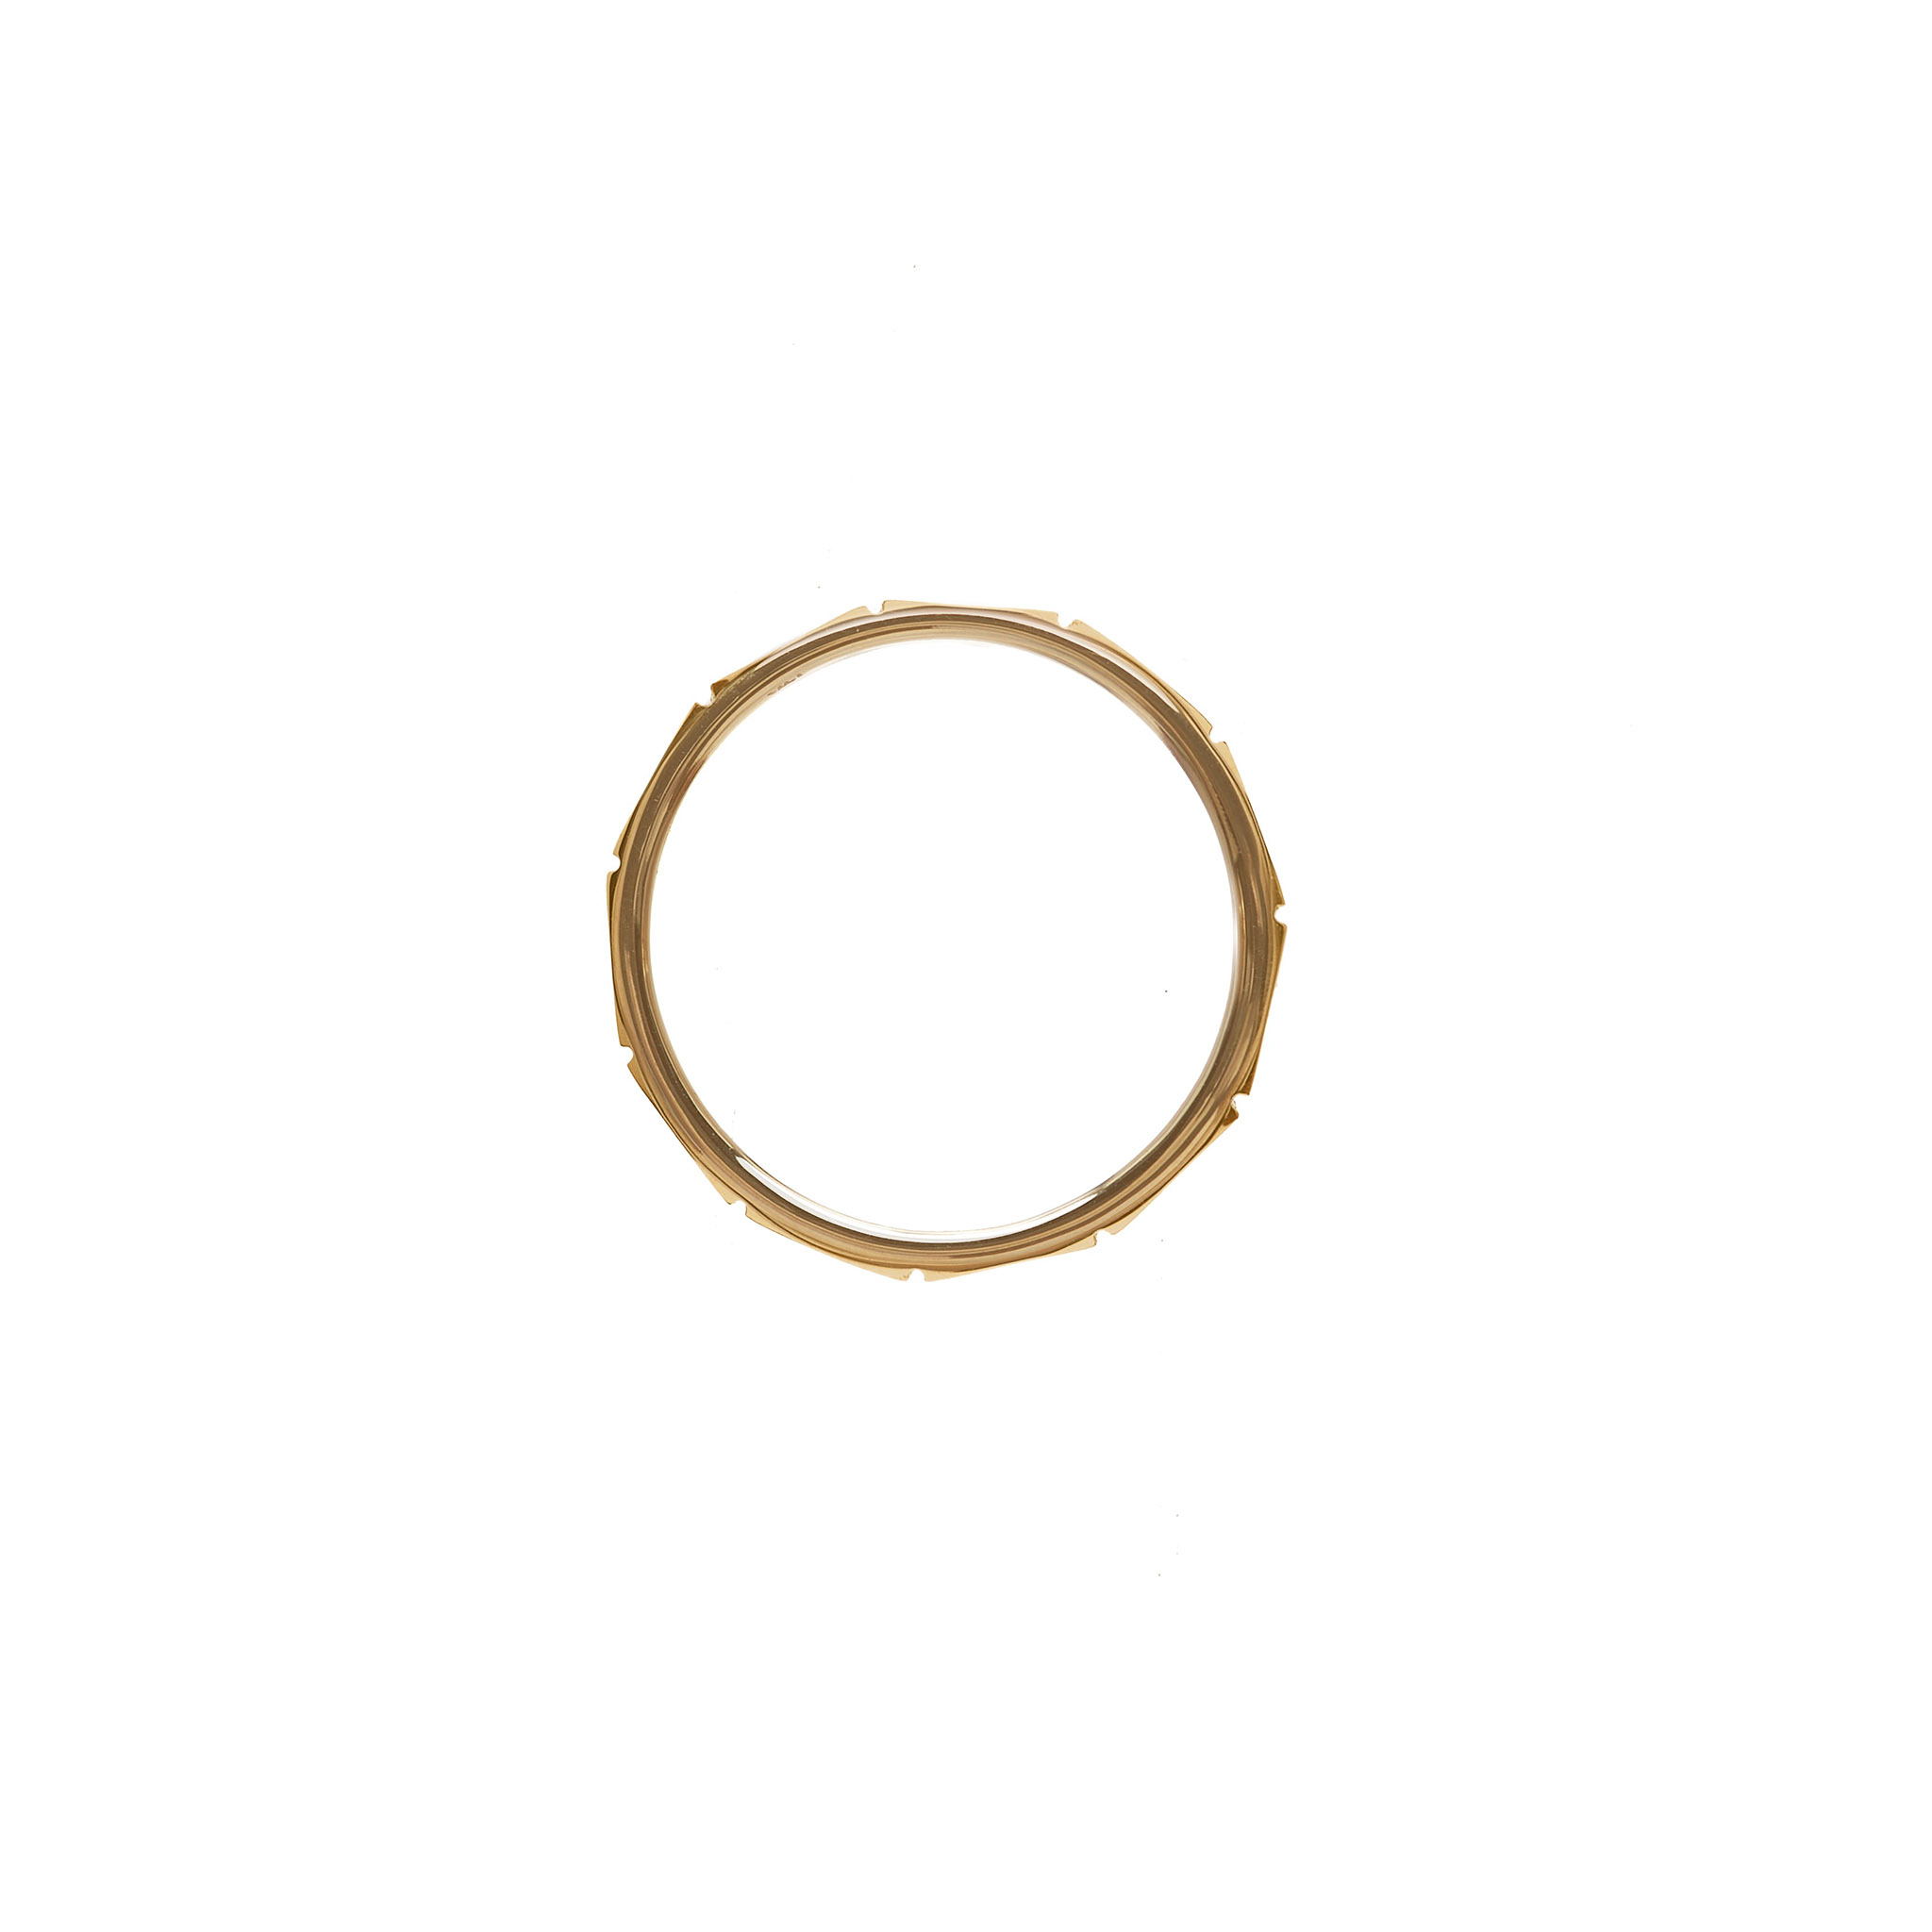 Sea Bamboo Ring, 14k Gold by The Straits Finery on curated-crowd.com